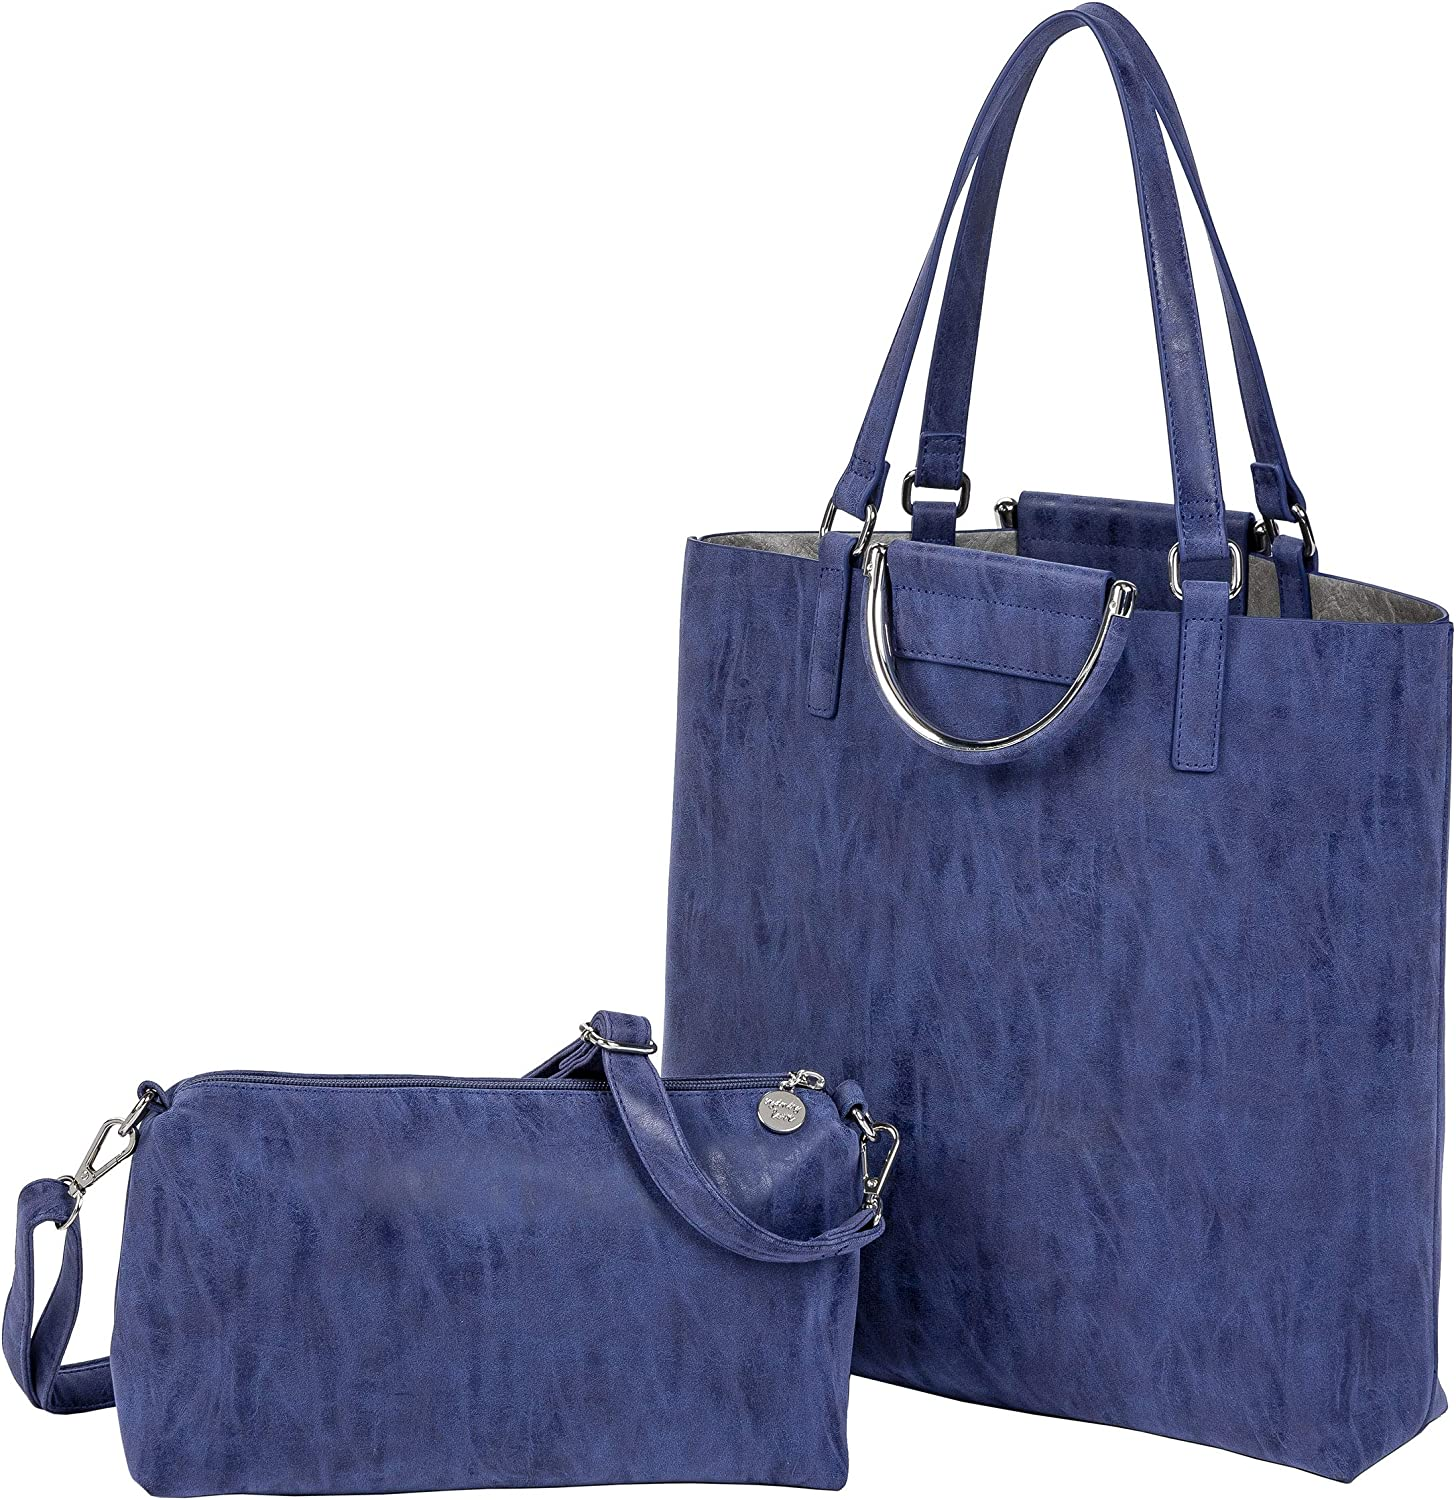 Popular brand in the world Sydney Love Vegan Outlet sale feature Tote South North